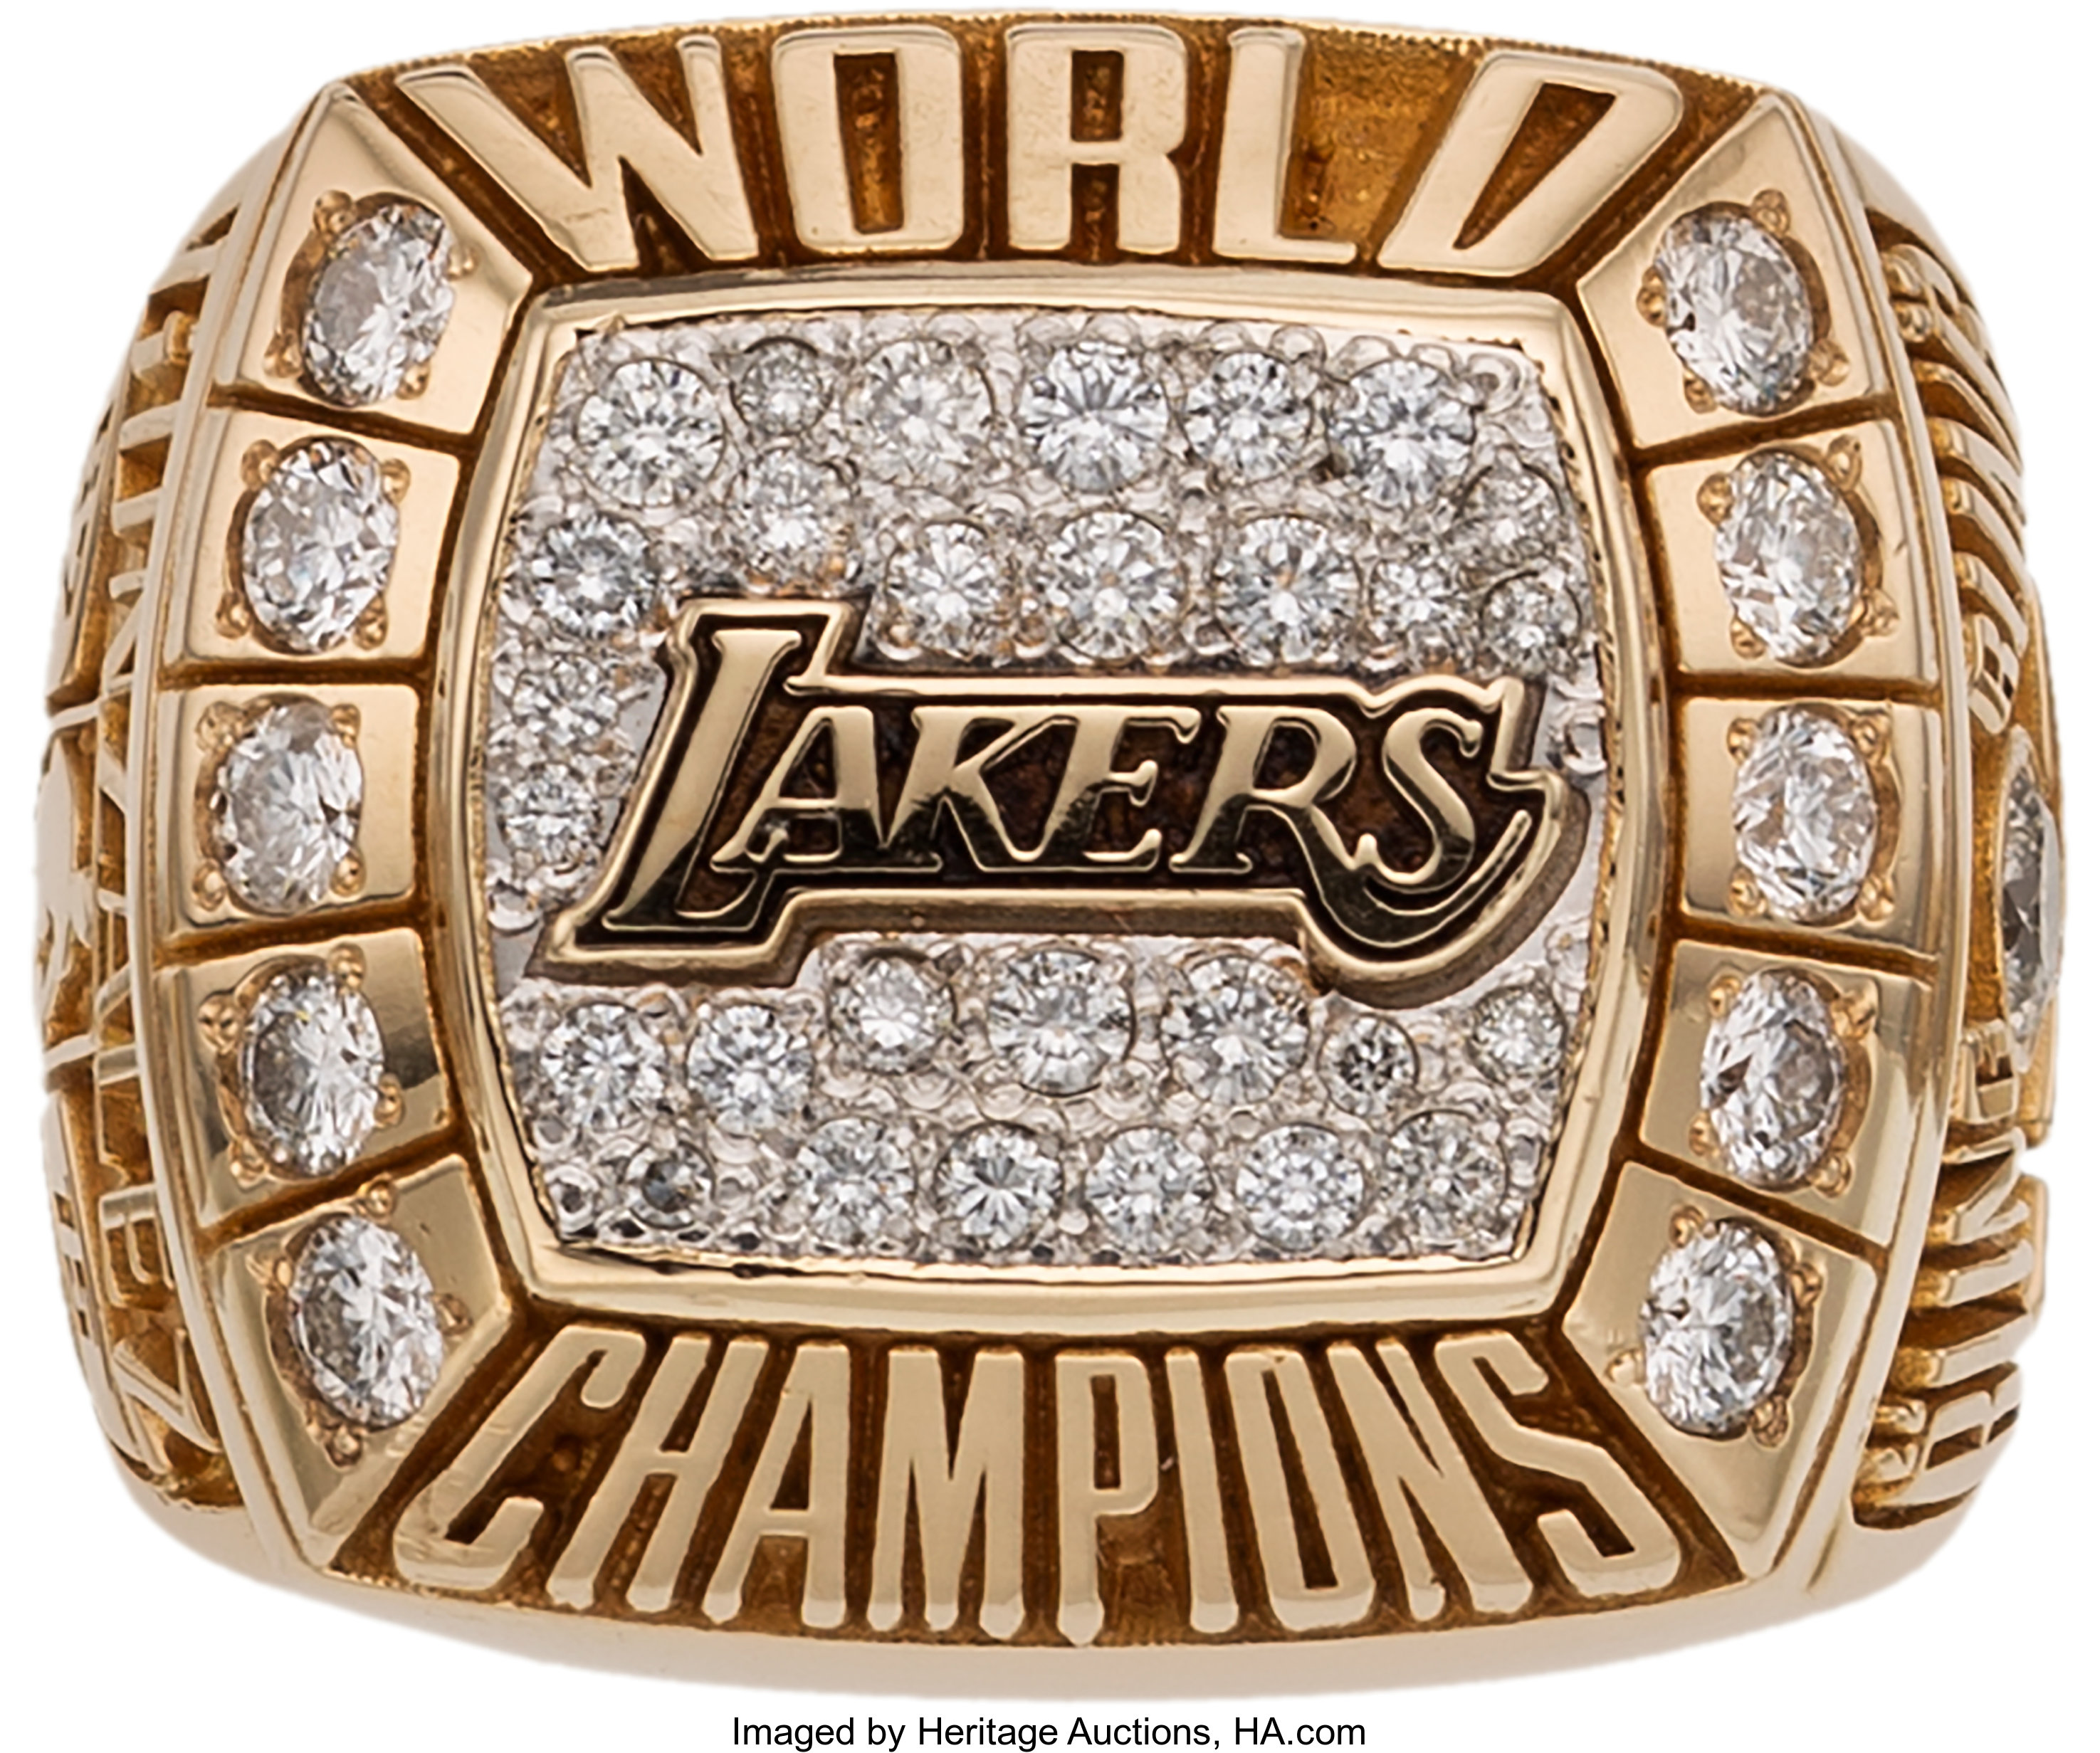 2000 Los Angeles Lakers Nba Championship Ring Basketball Lot 80103 Heritage Auctions